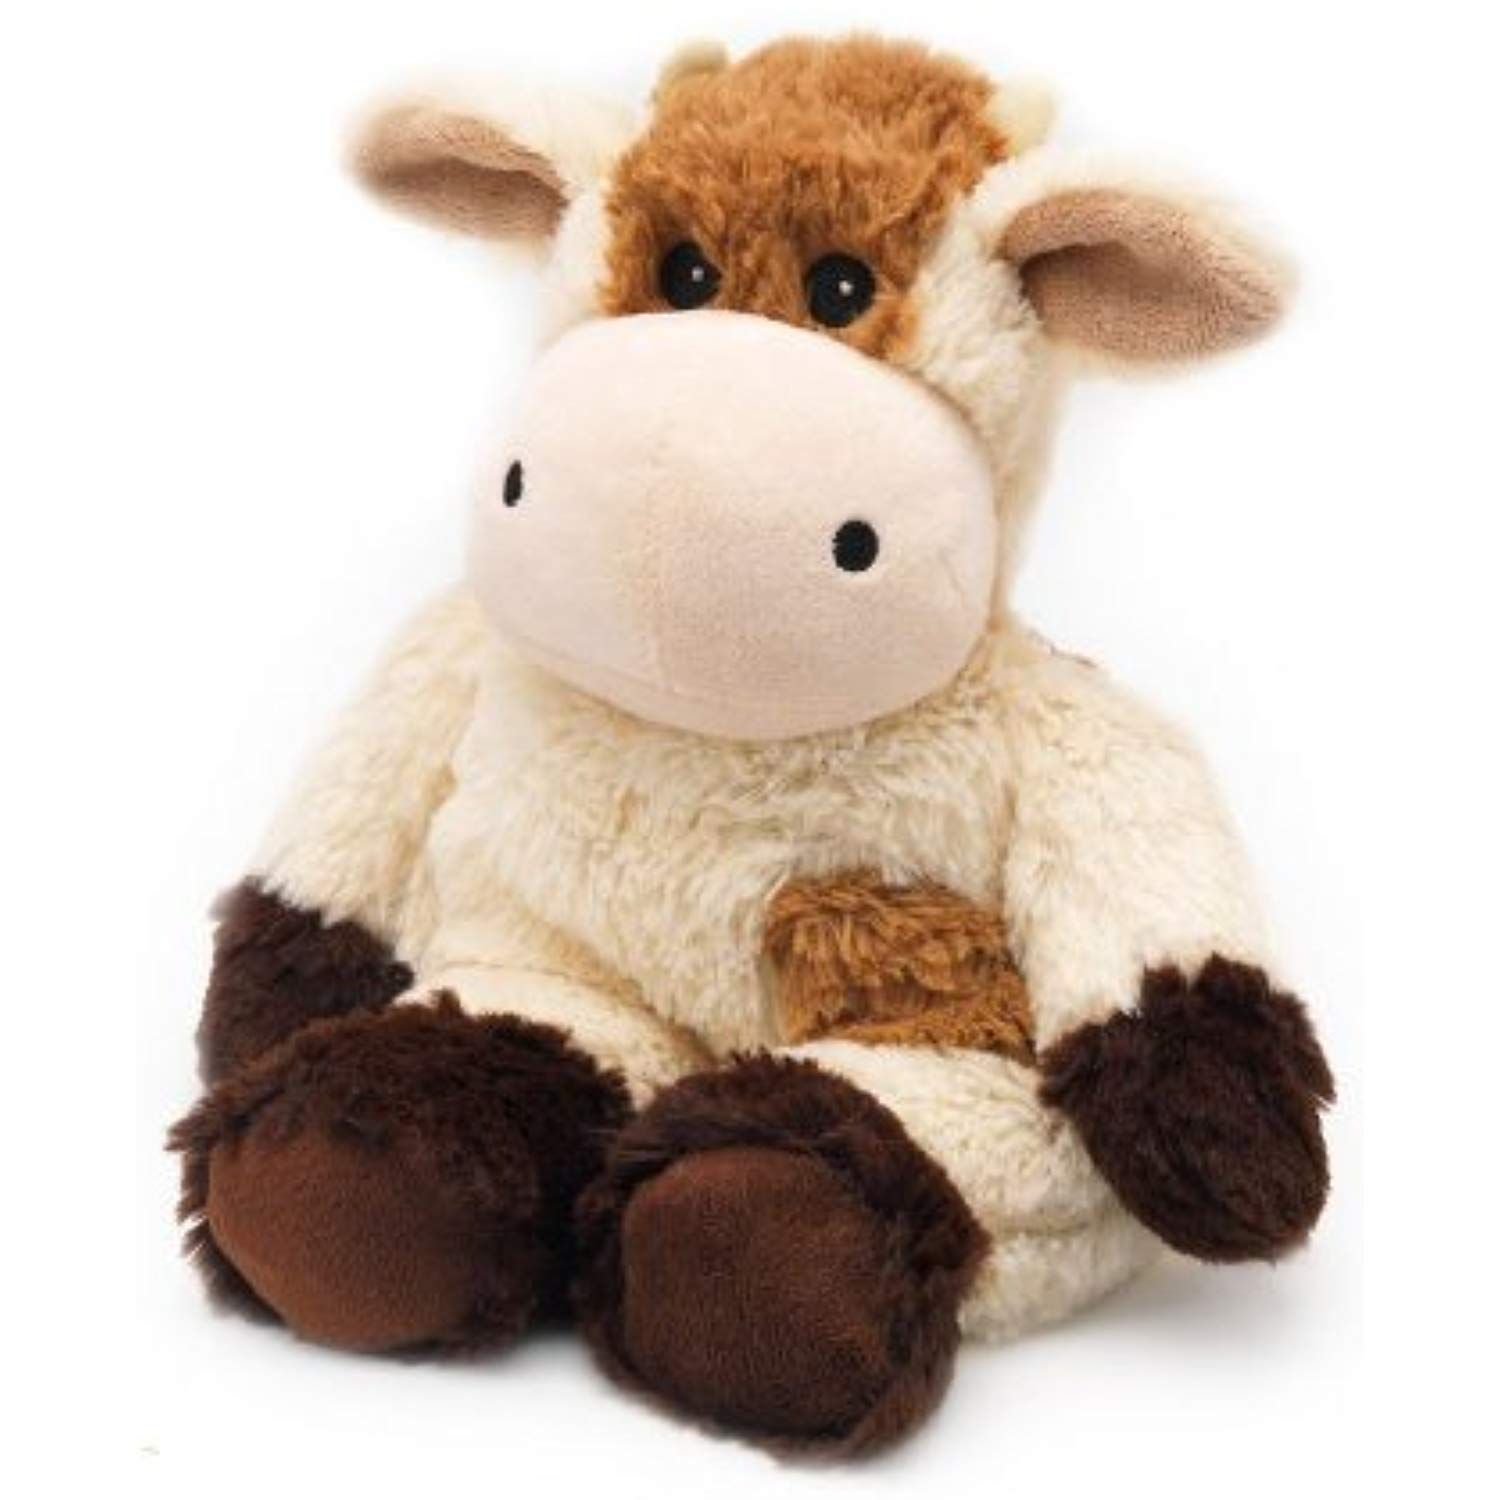 Cozy Plush Cow Microwaveable Soft Stuffed Animal Toy